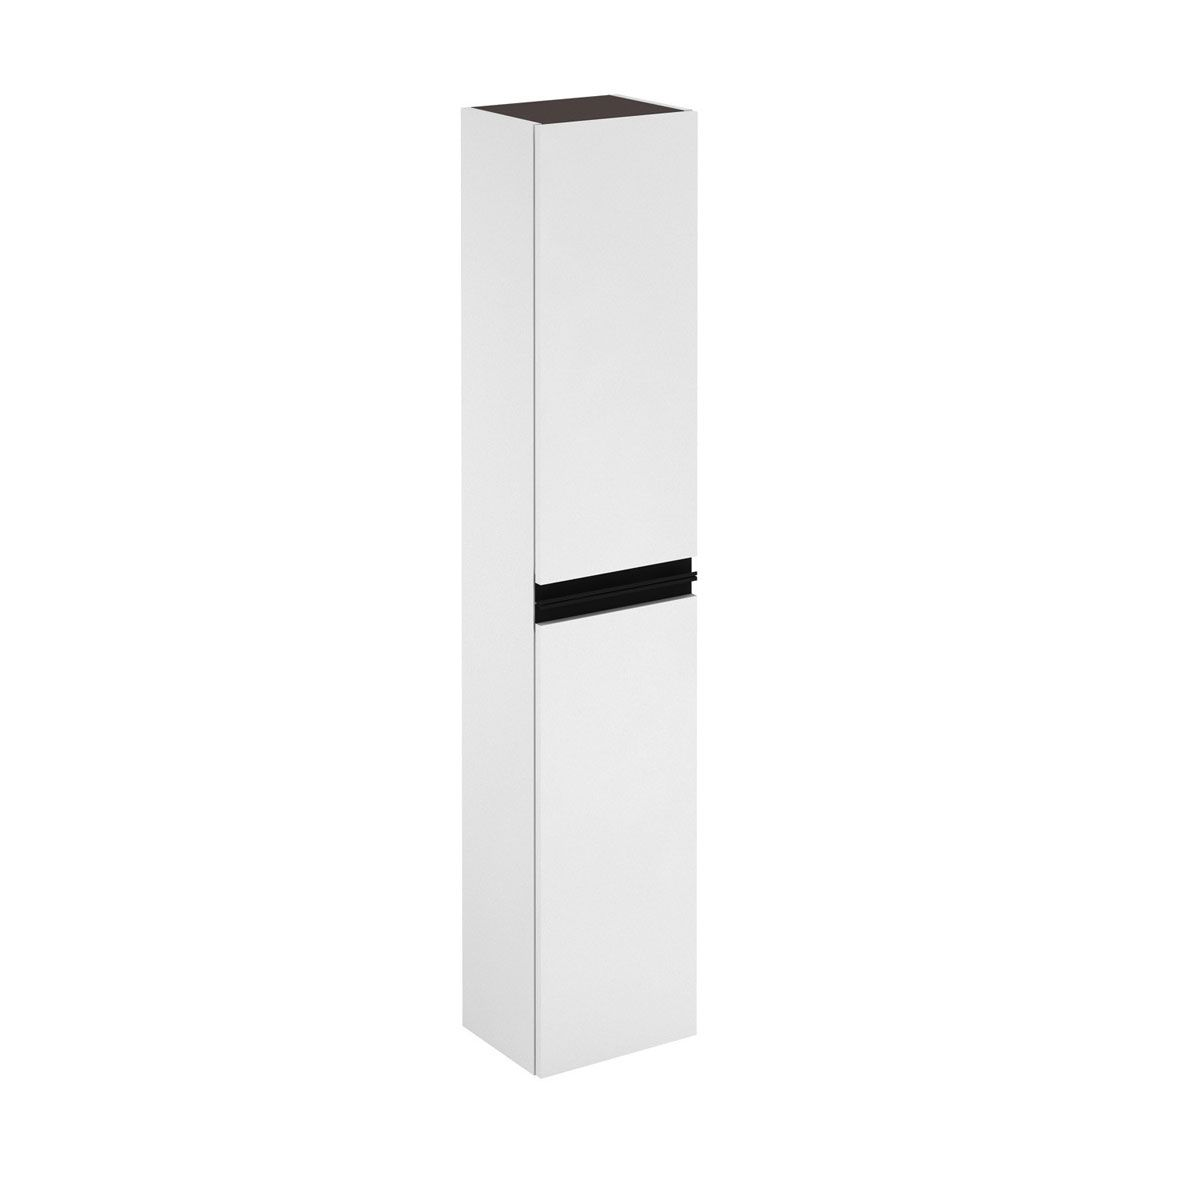 Frontline Structure Matt White Wall Mounted Tall Unit 300mm